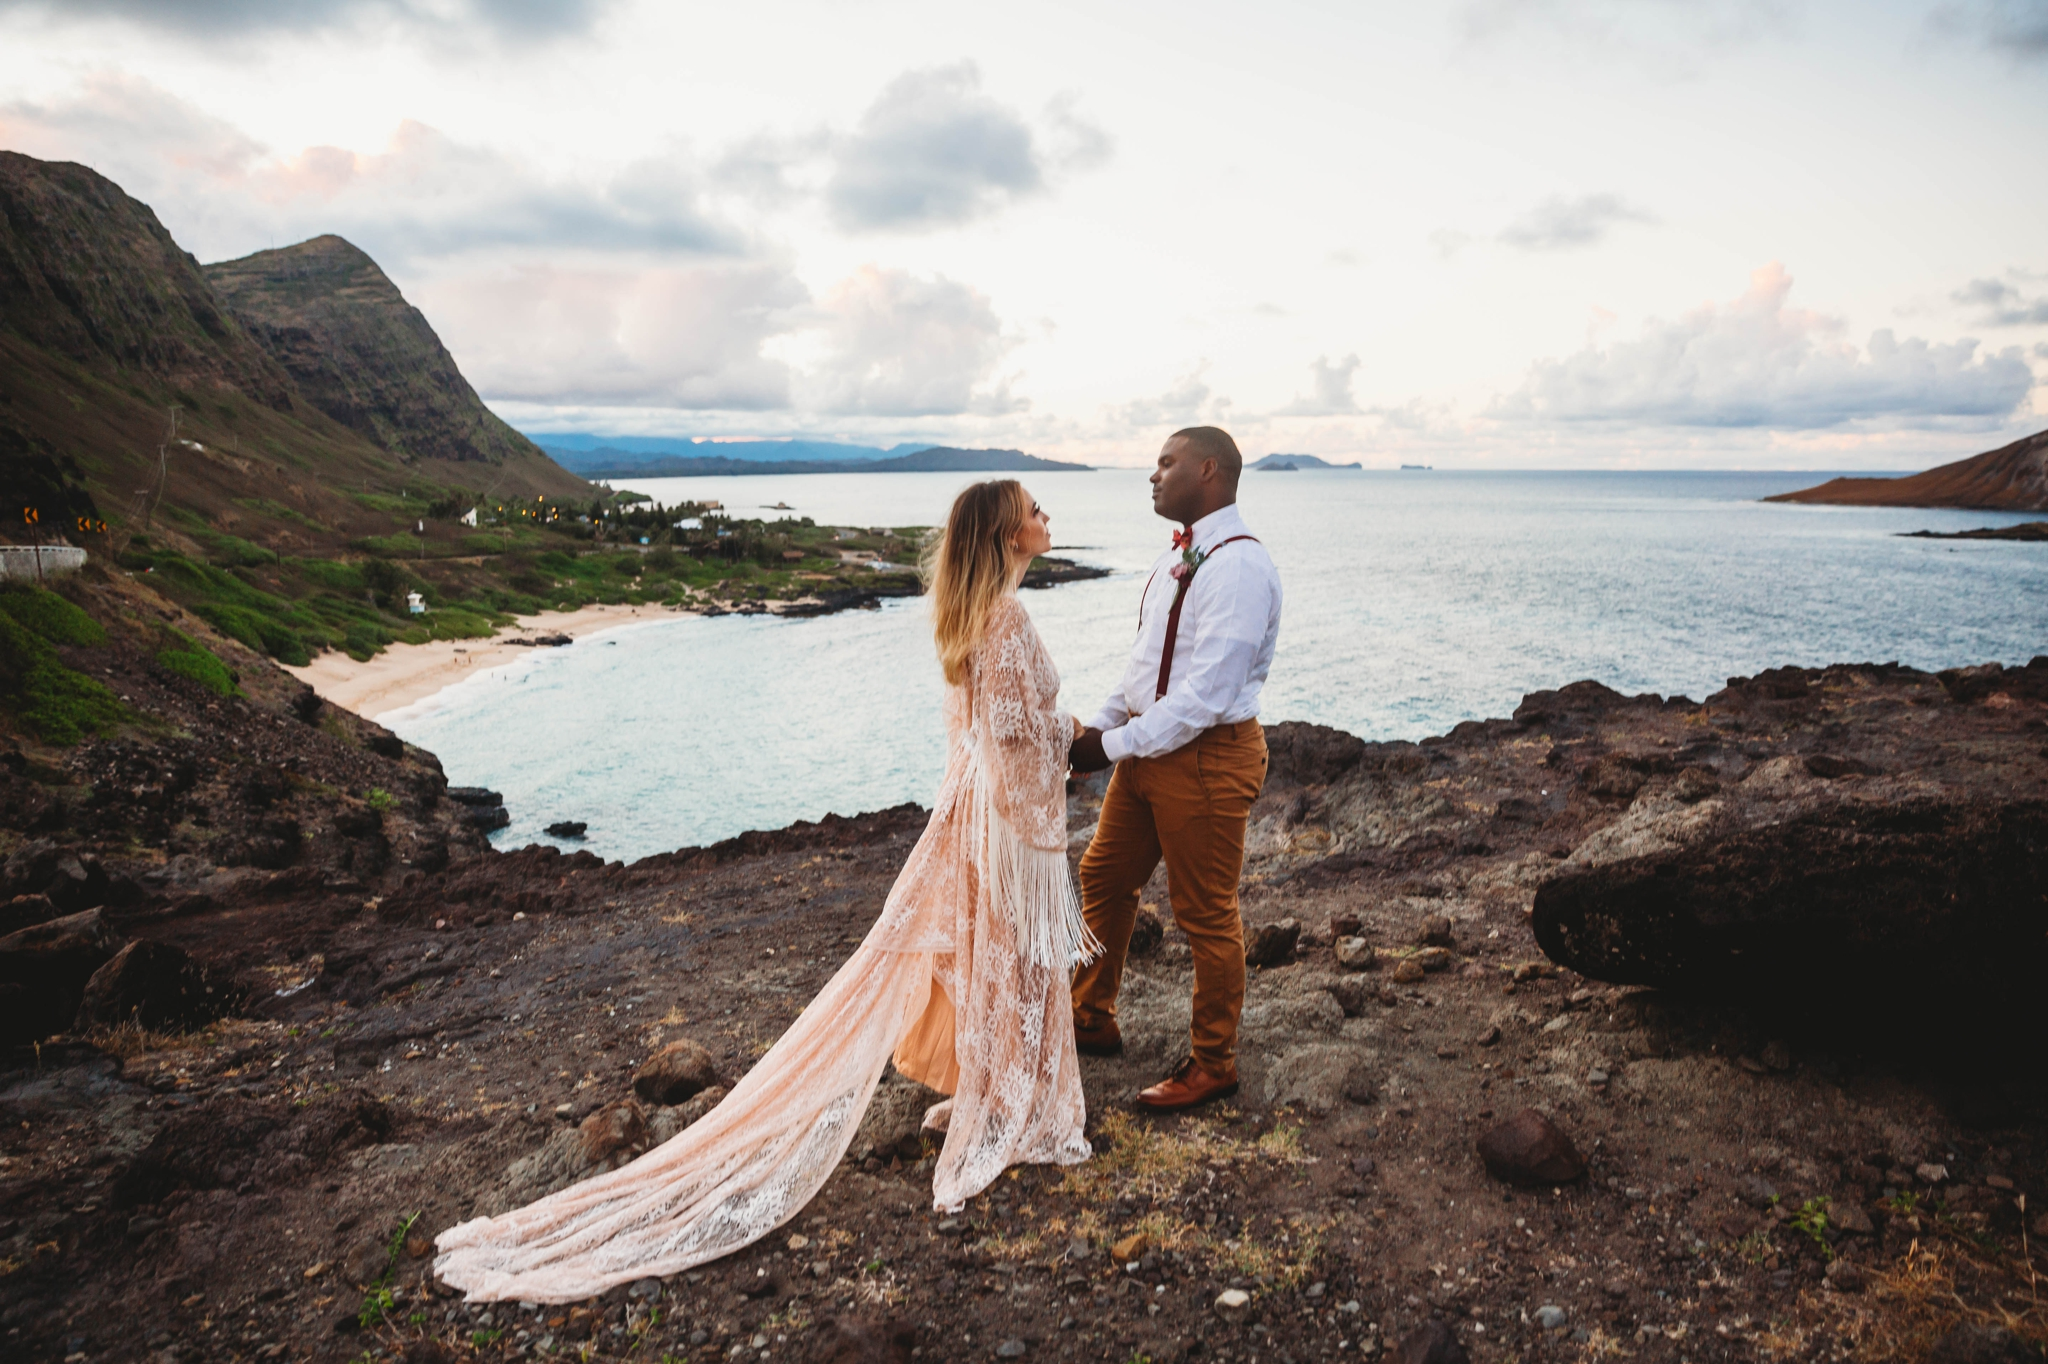 wedding ceremony at Makapuu Lookout overlooking the ocean and beach, Waimanalo, HI - Oahu Hawaii Engagement Photographer - Bride in a flowy fringe boho wedding dress - lanikai lookout - deutsche hochzeits fotografin in hawaii - smal1 - dark and moody - true to live